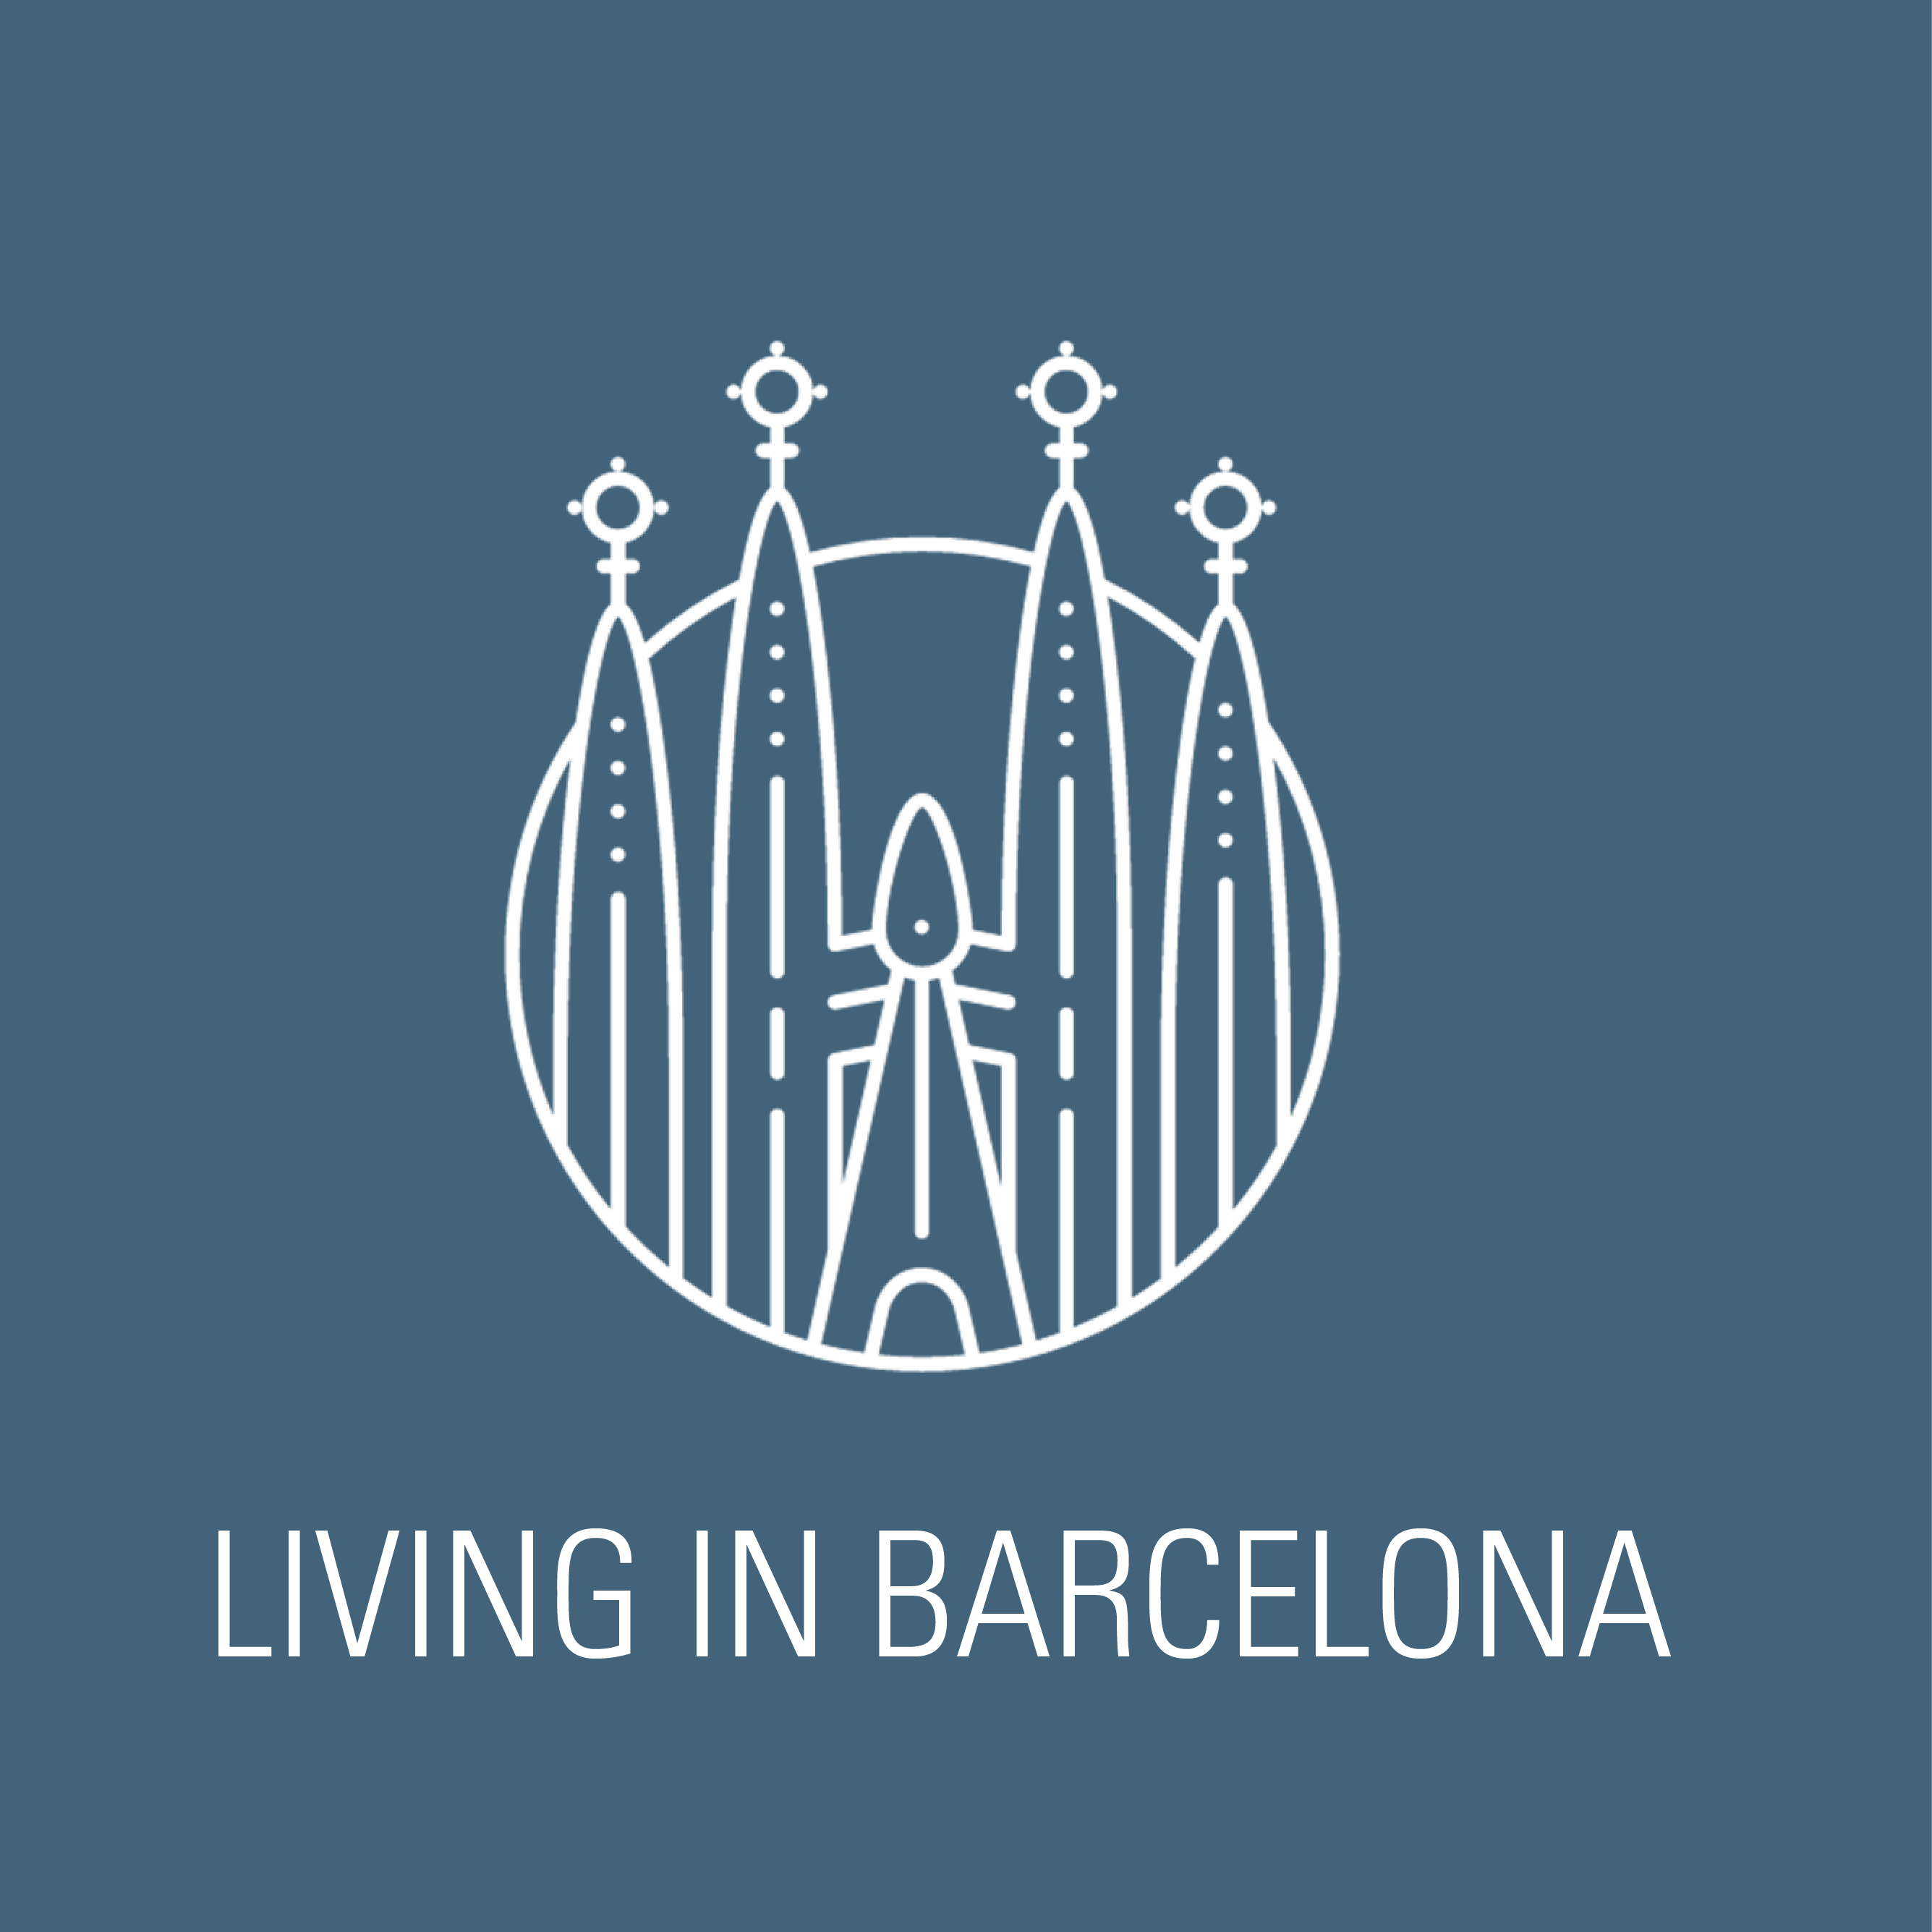 Living in Barcelona